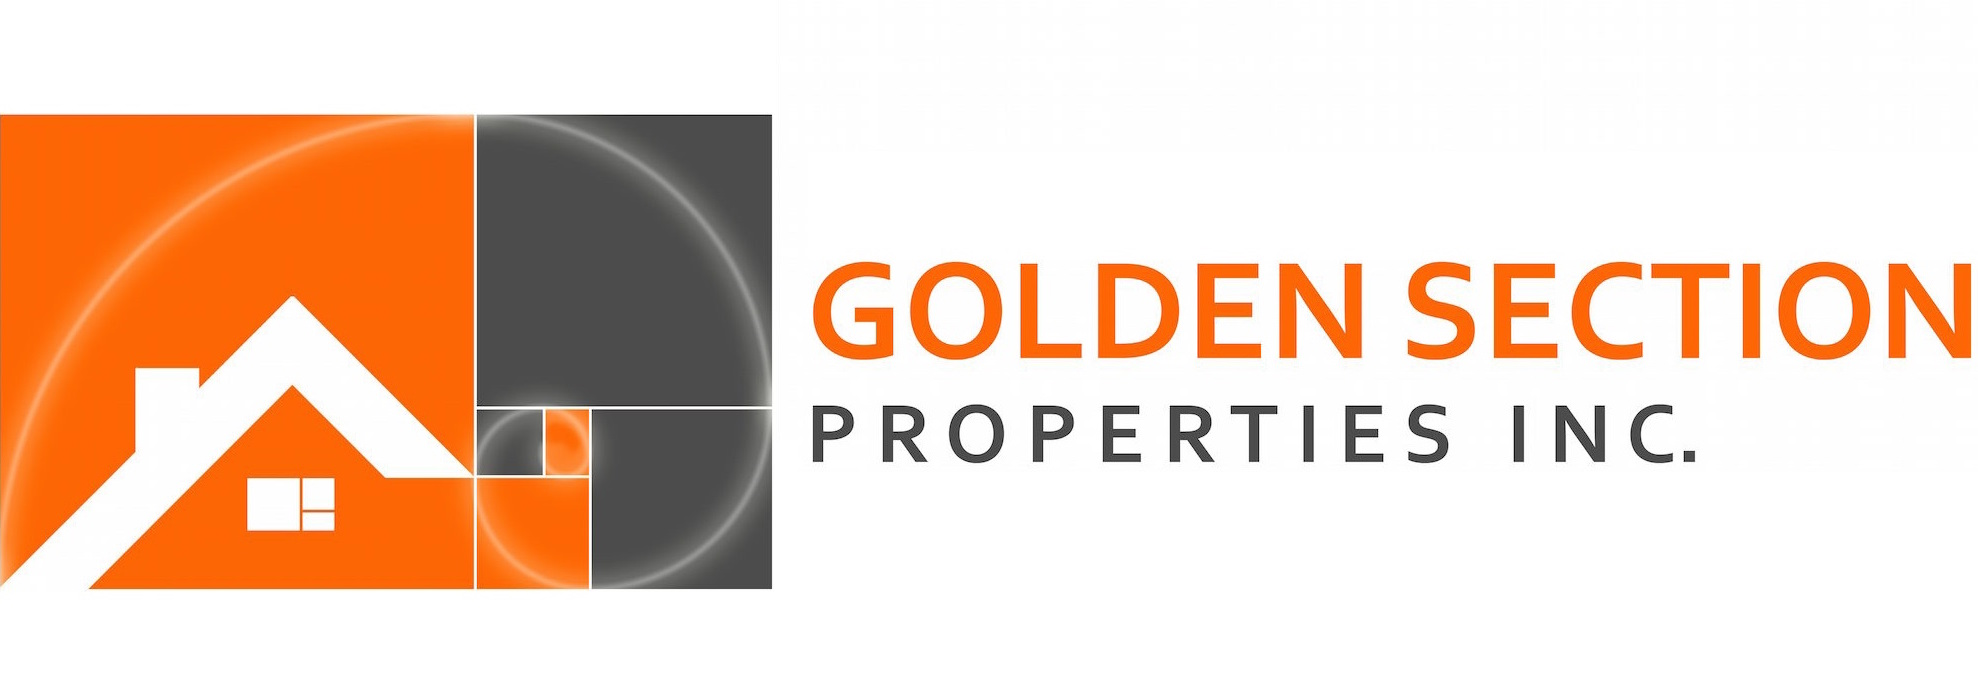 Golden Section Properties